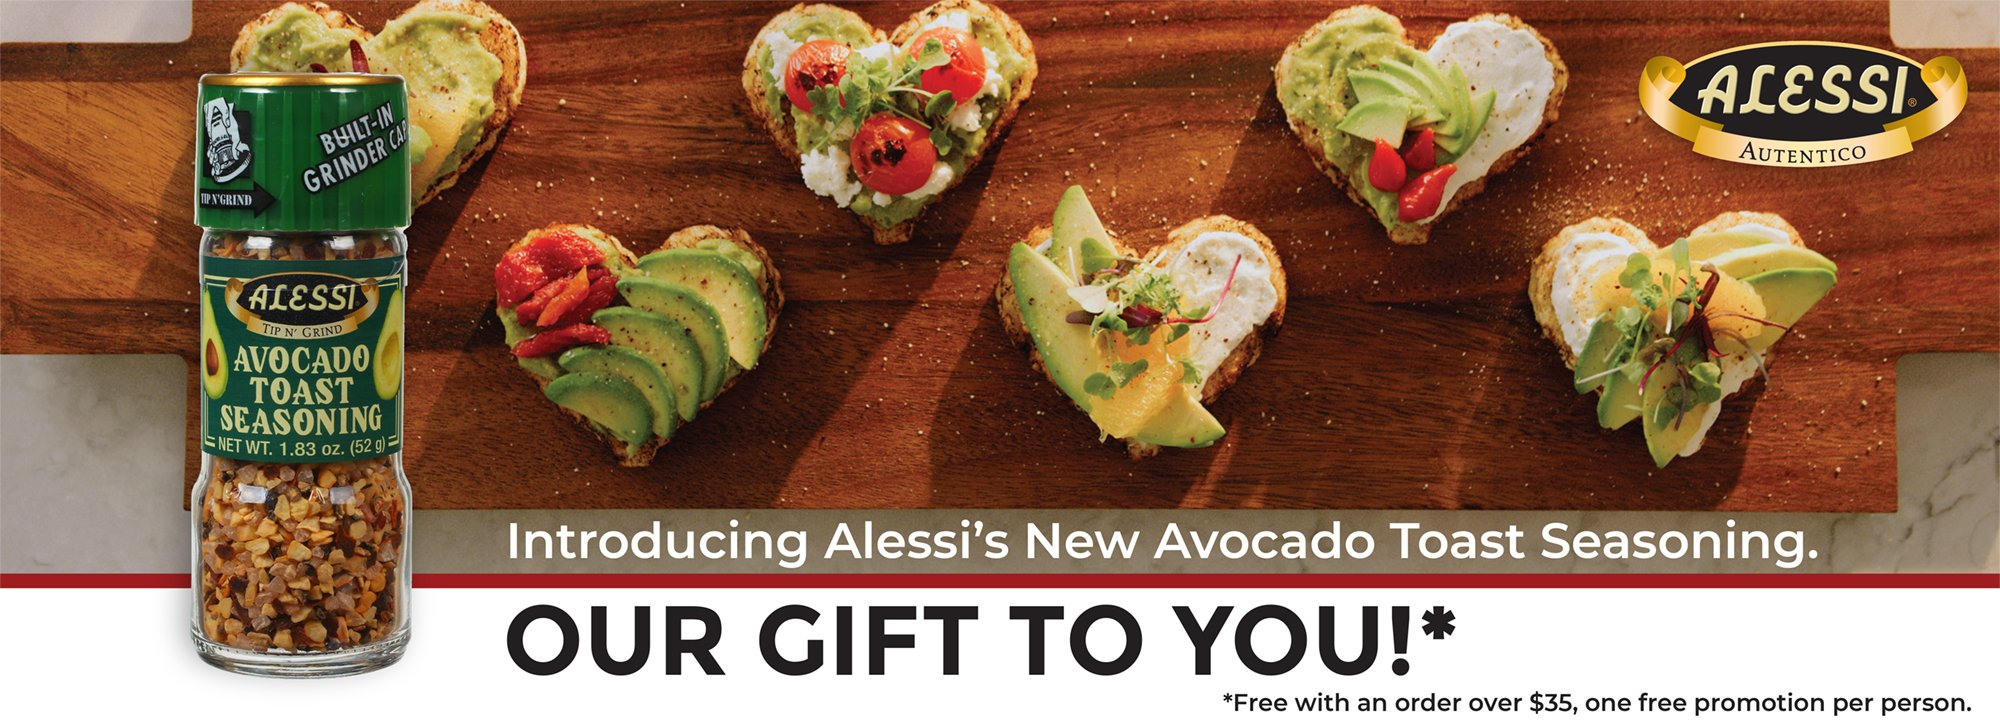 New Avocado Toast Seasoning Free with $35 order